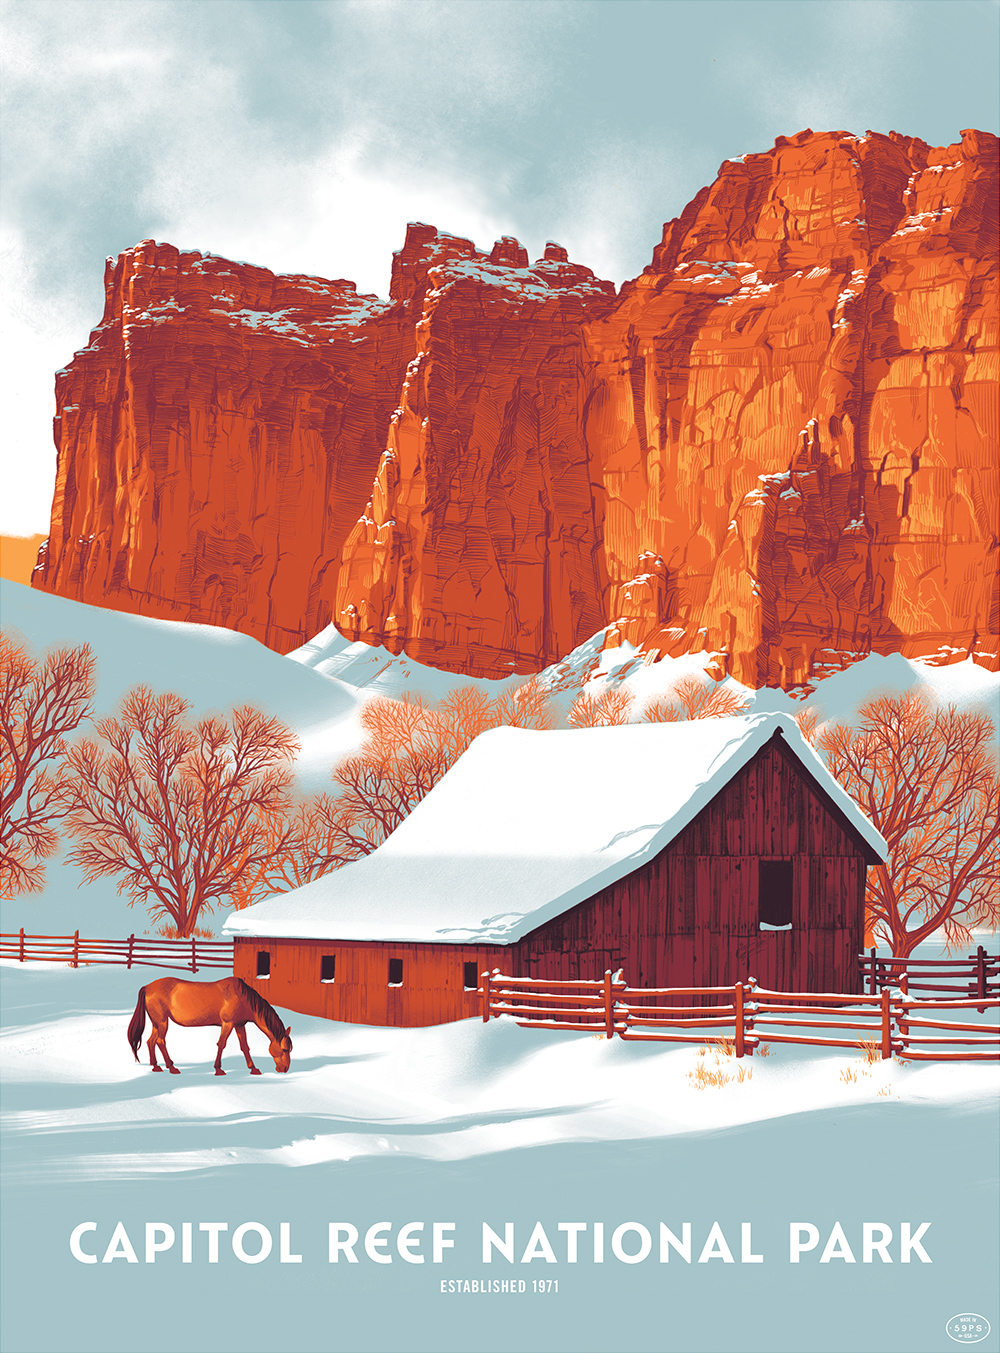 59 Parks | Capitol Reef